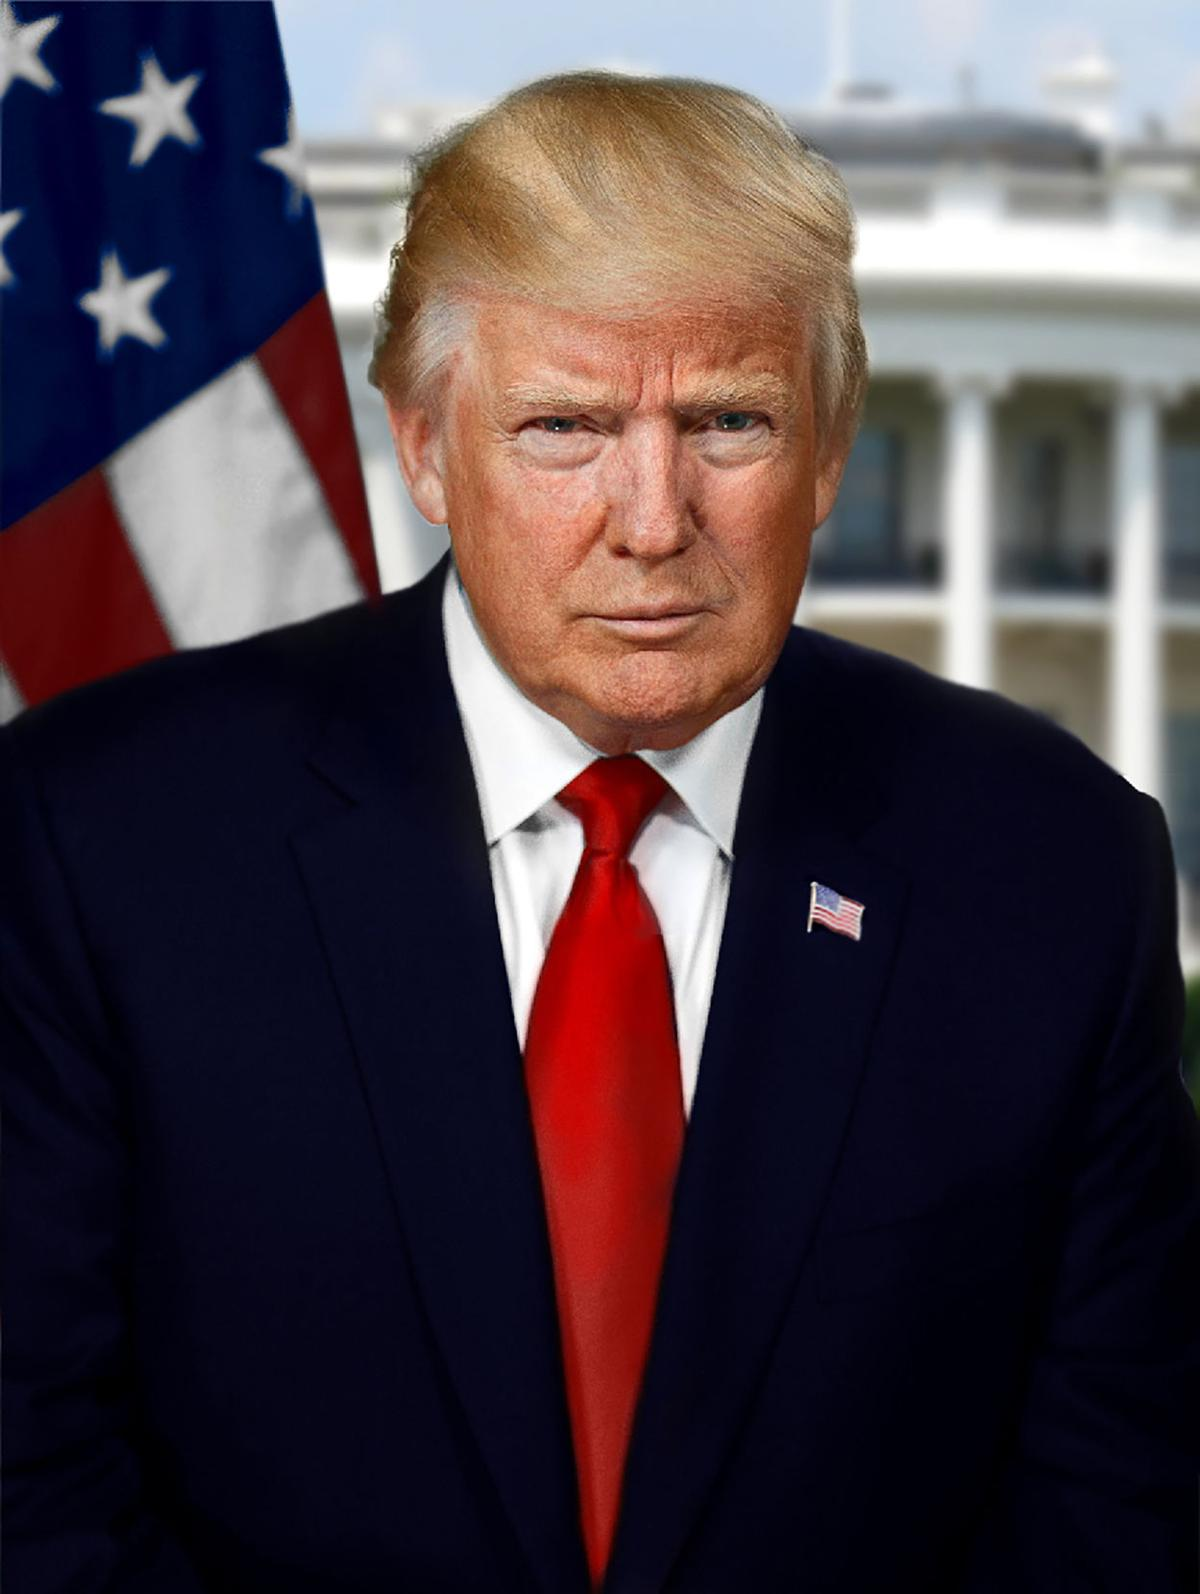 President Donald Trump  Source: Wikimedia Commons